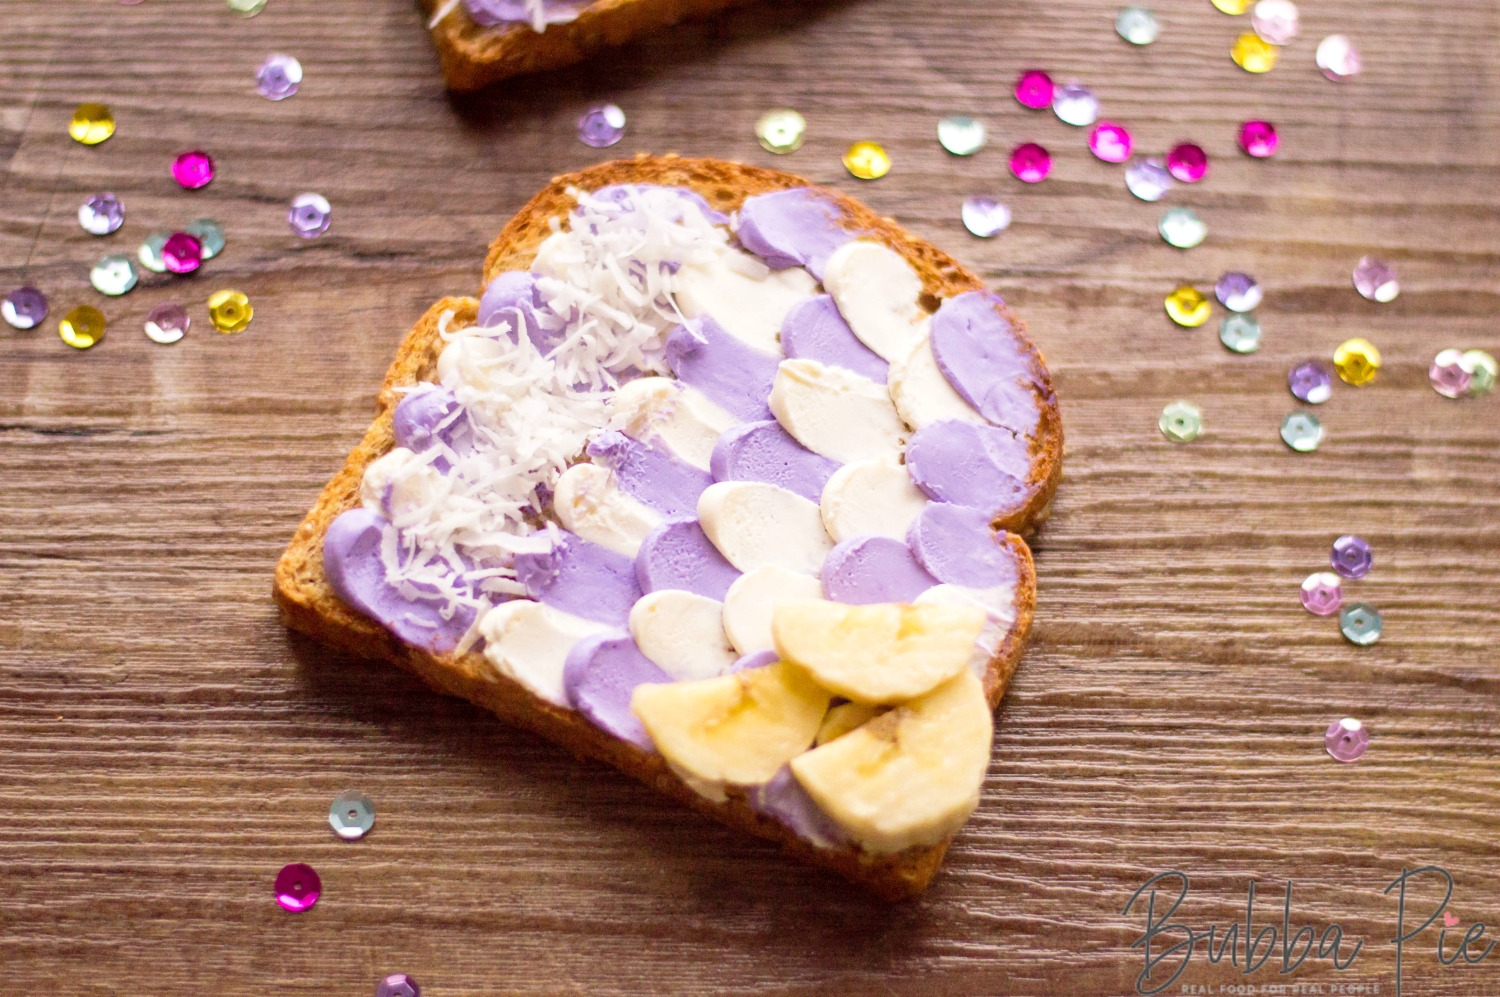 Mermaid Toast sitting on a table with decorative sprinkles and confetti